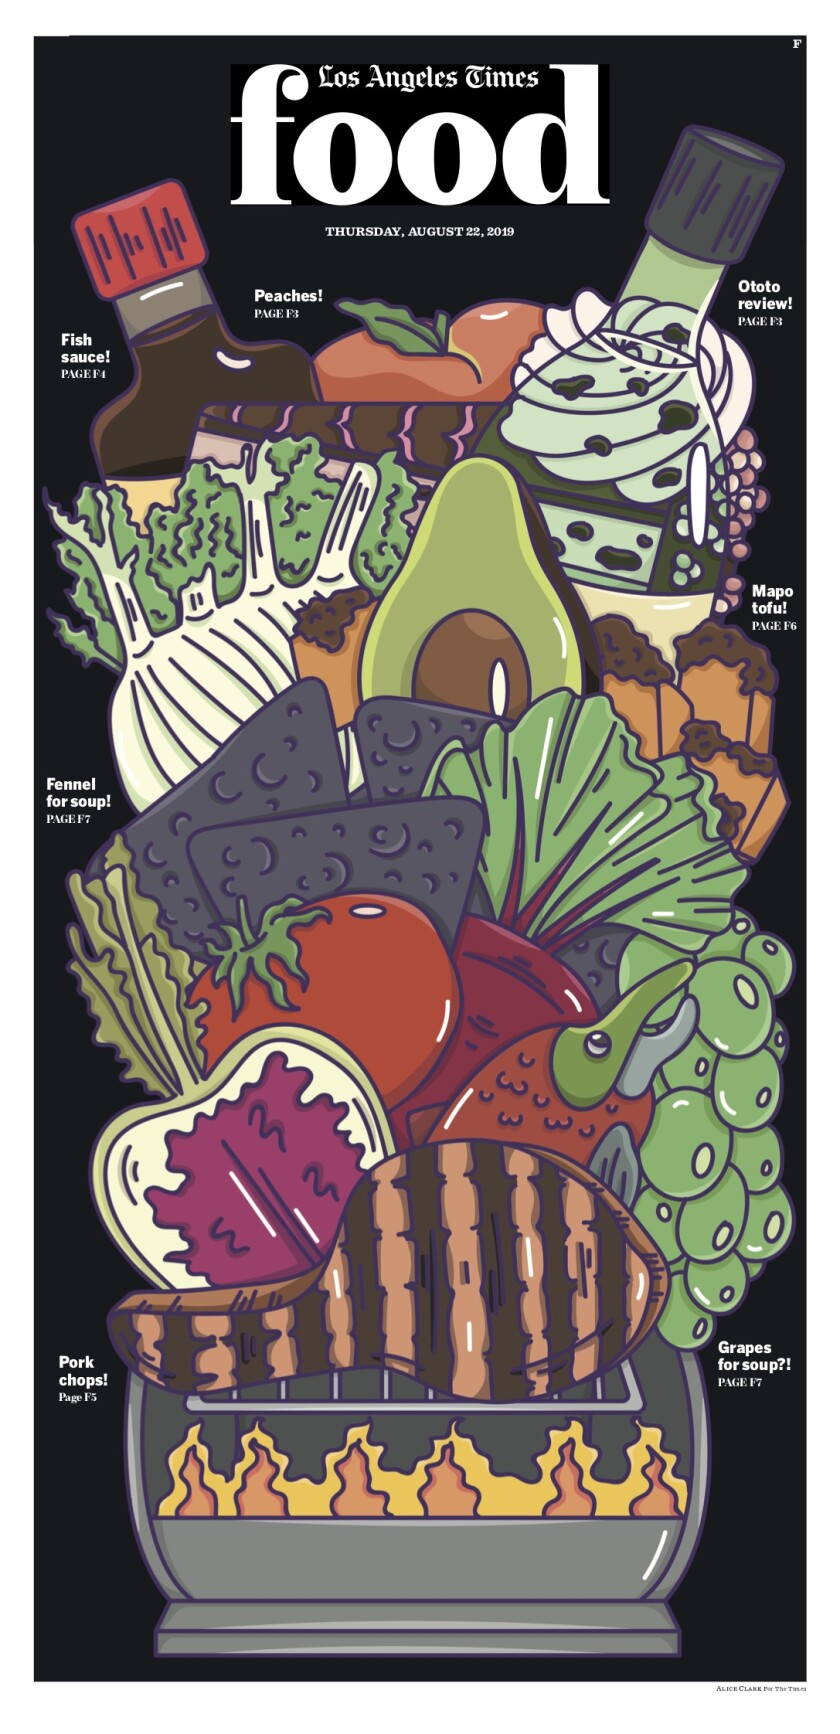 LA Times Food cover August 22